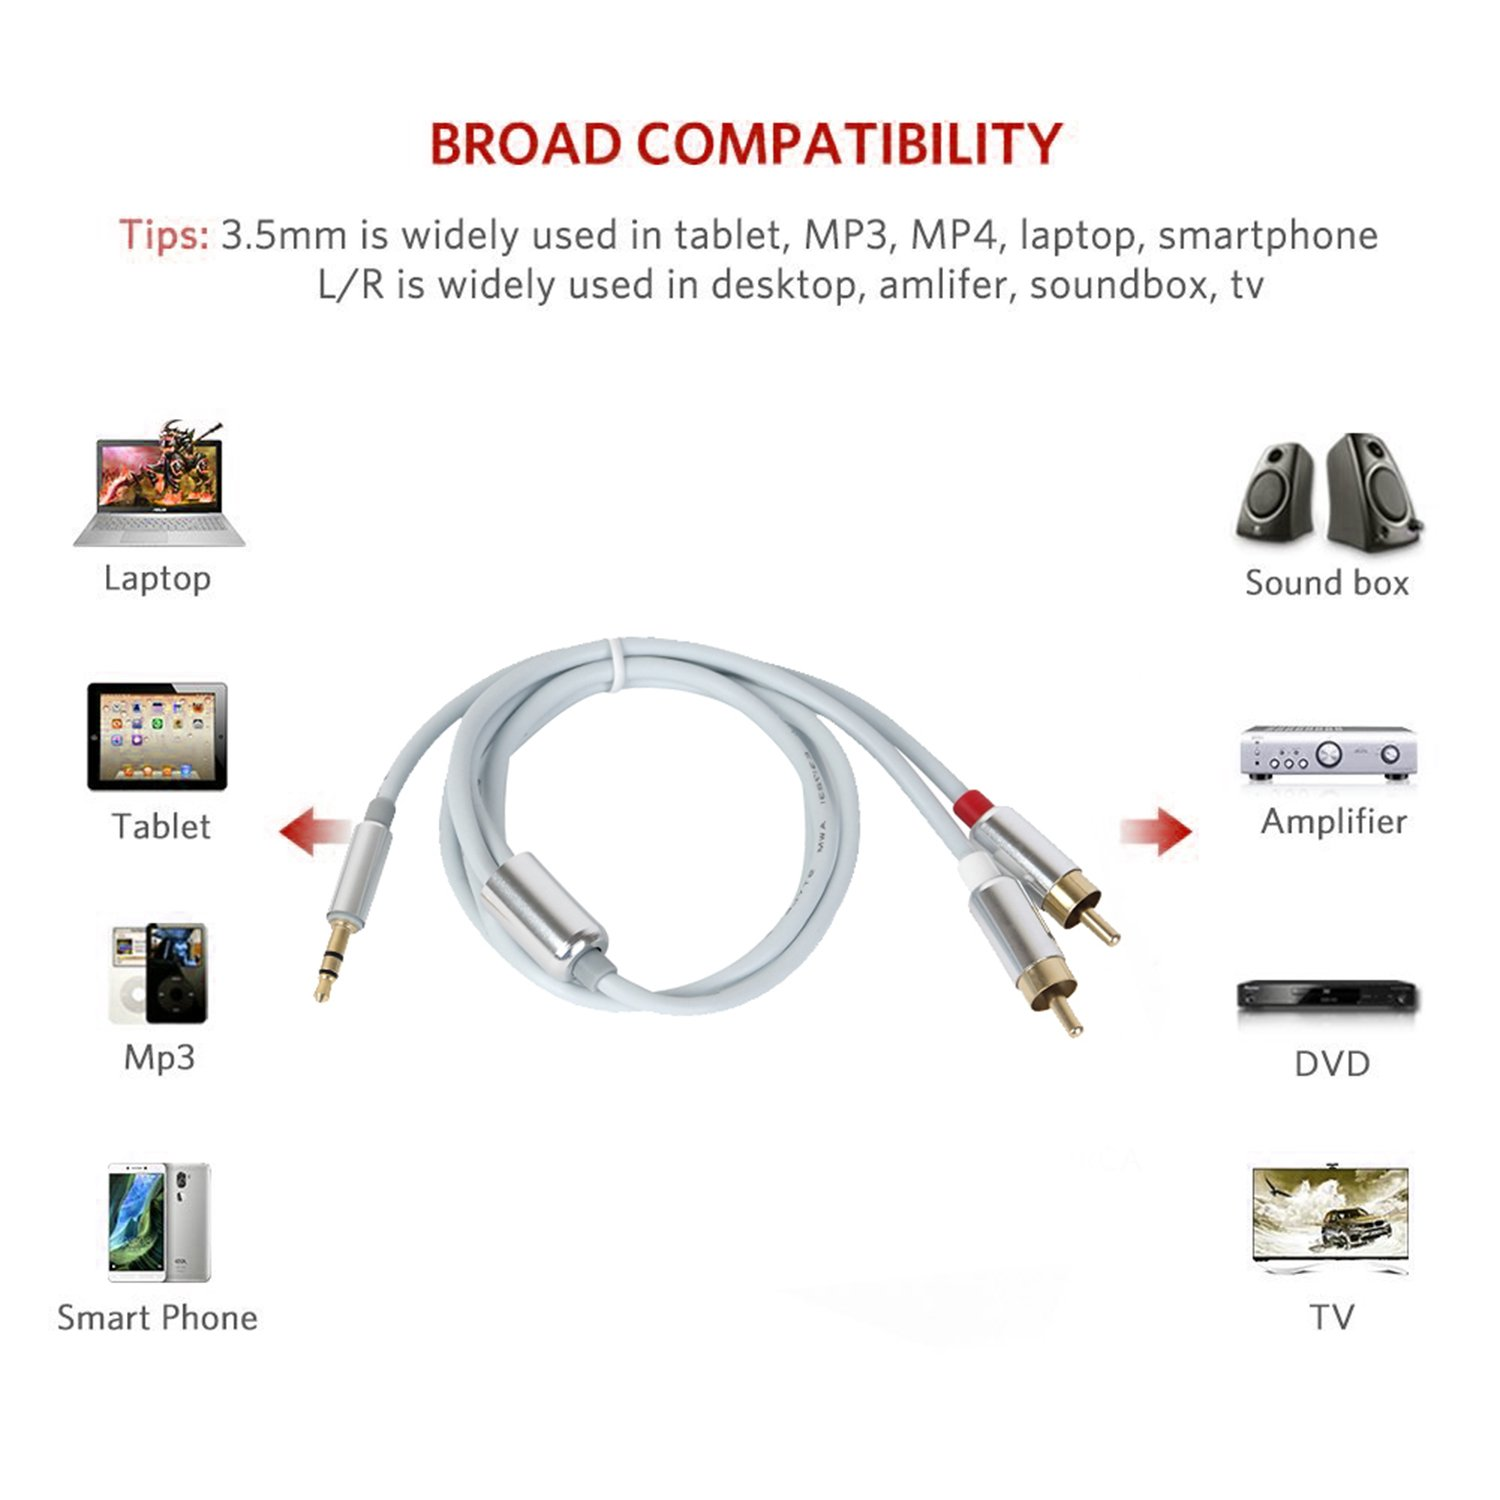 Amazon.com: LDKCOK RCA Cable, Dual Shielded Gold-Plated 3.5mm Male to 2RCA Male Stereo Audio Y Cable (white, 10): Office Products